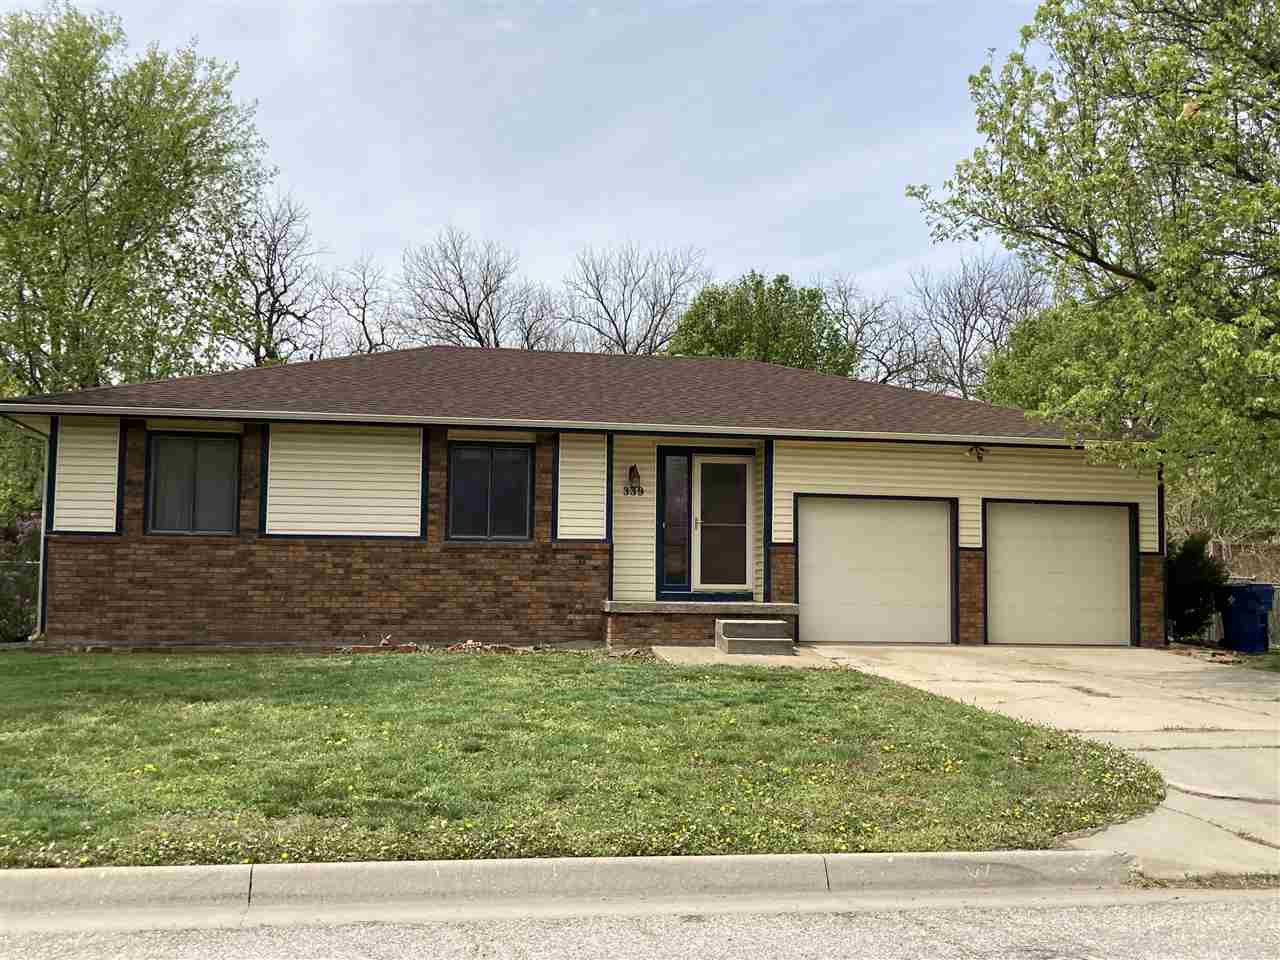 Great opportunity to own a home in desirable Westlink Neighborhood. Great floor plan, fenced backyar